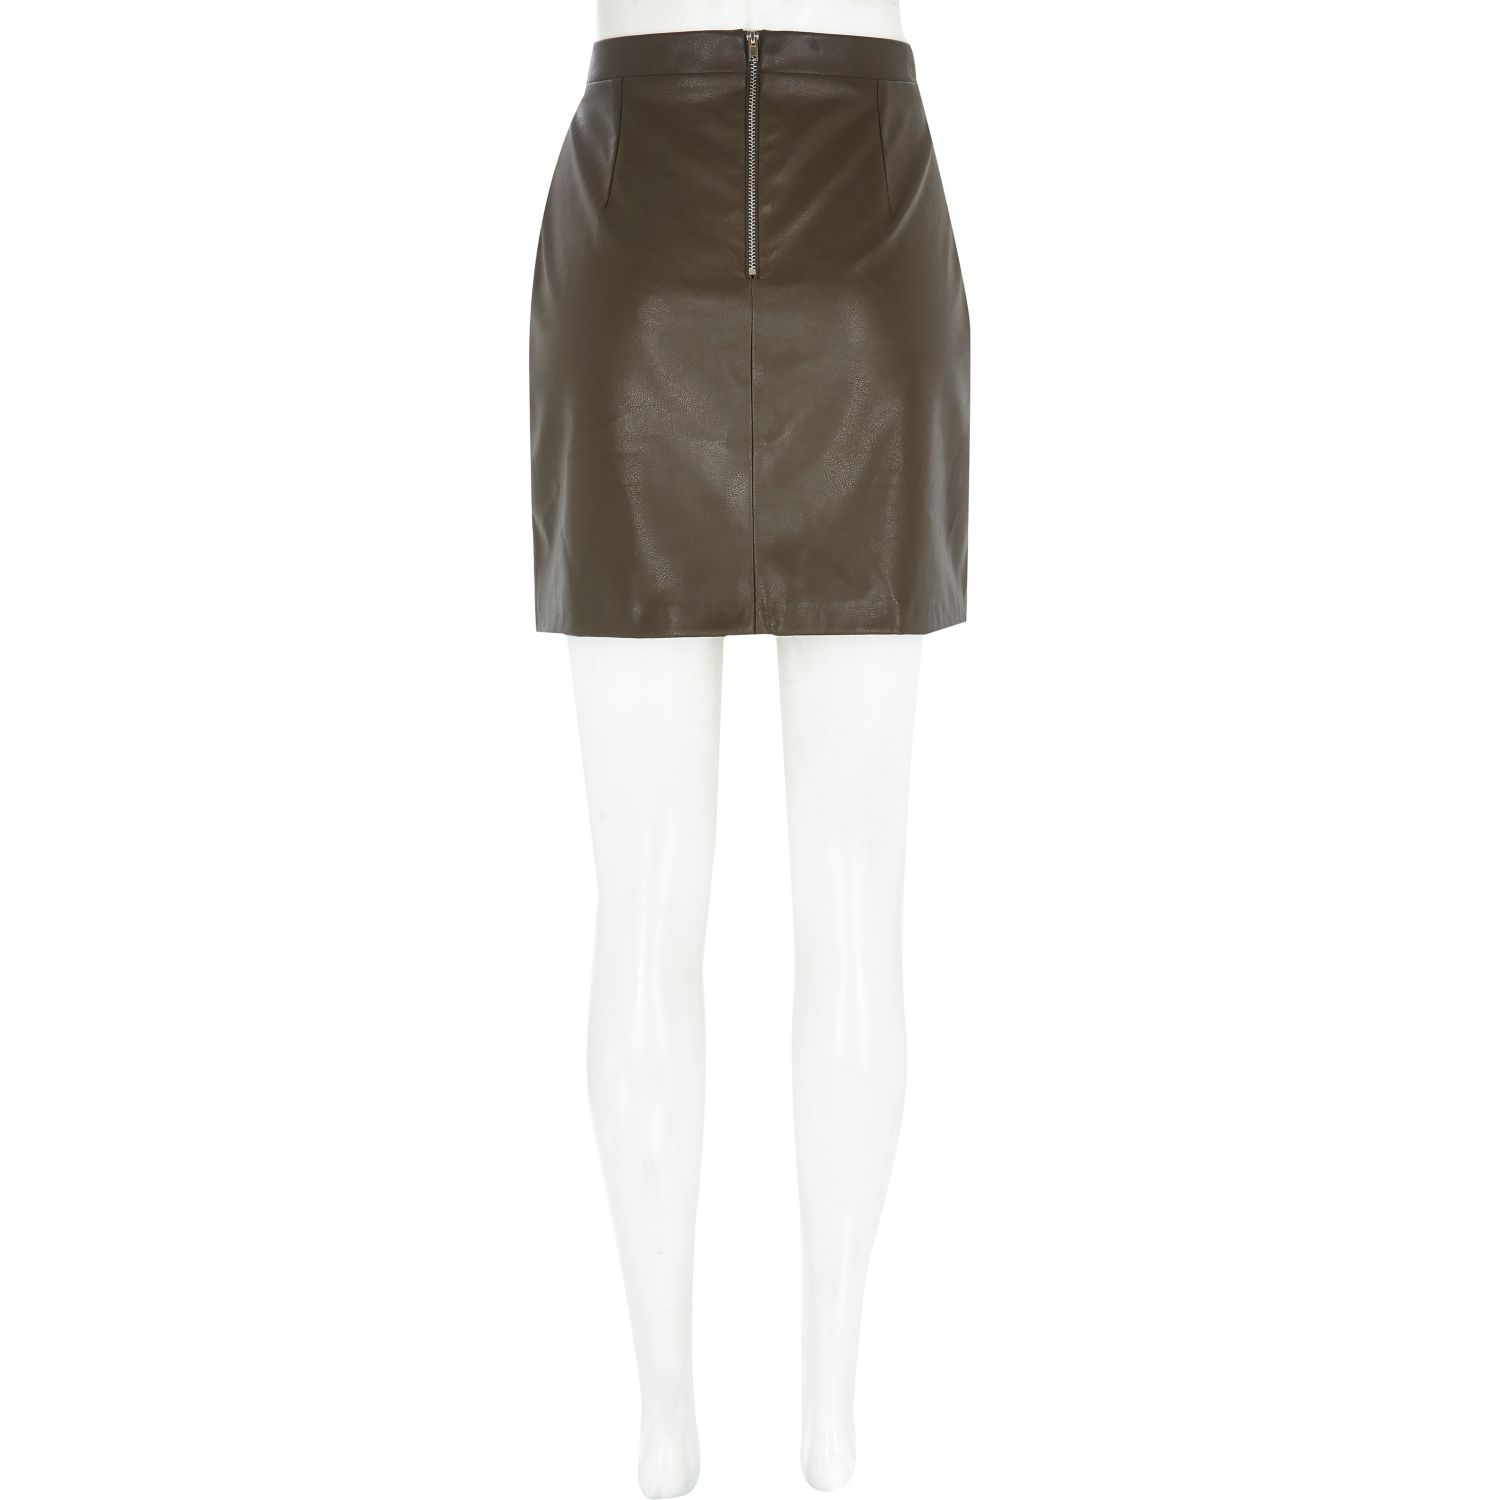 River island Khaki Leather-Look Mini Skirt in Natural | Lyst